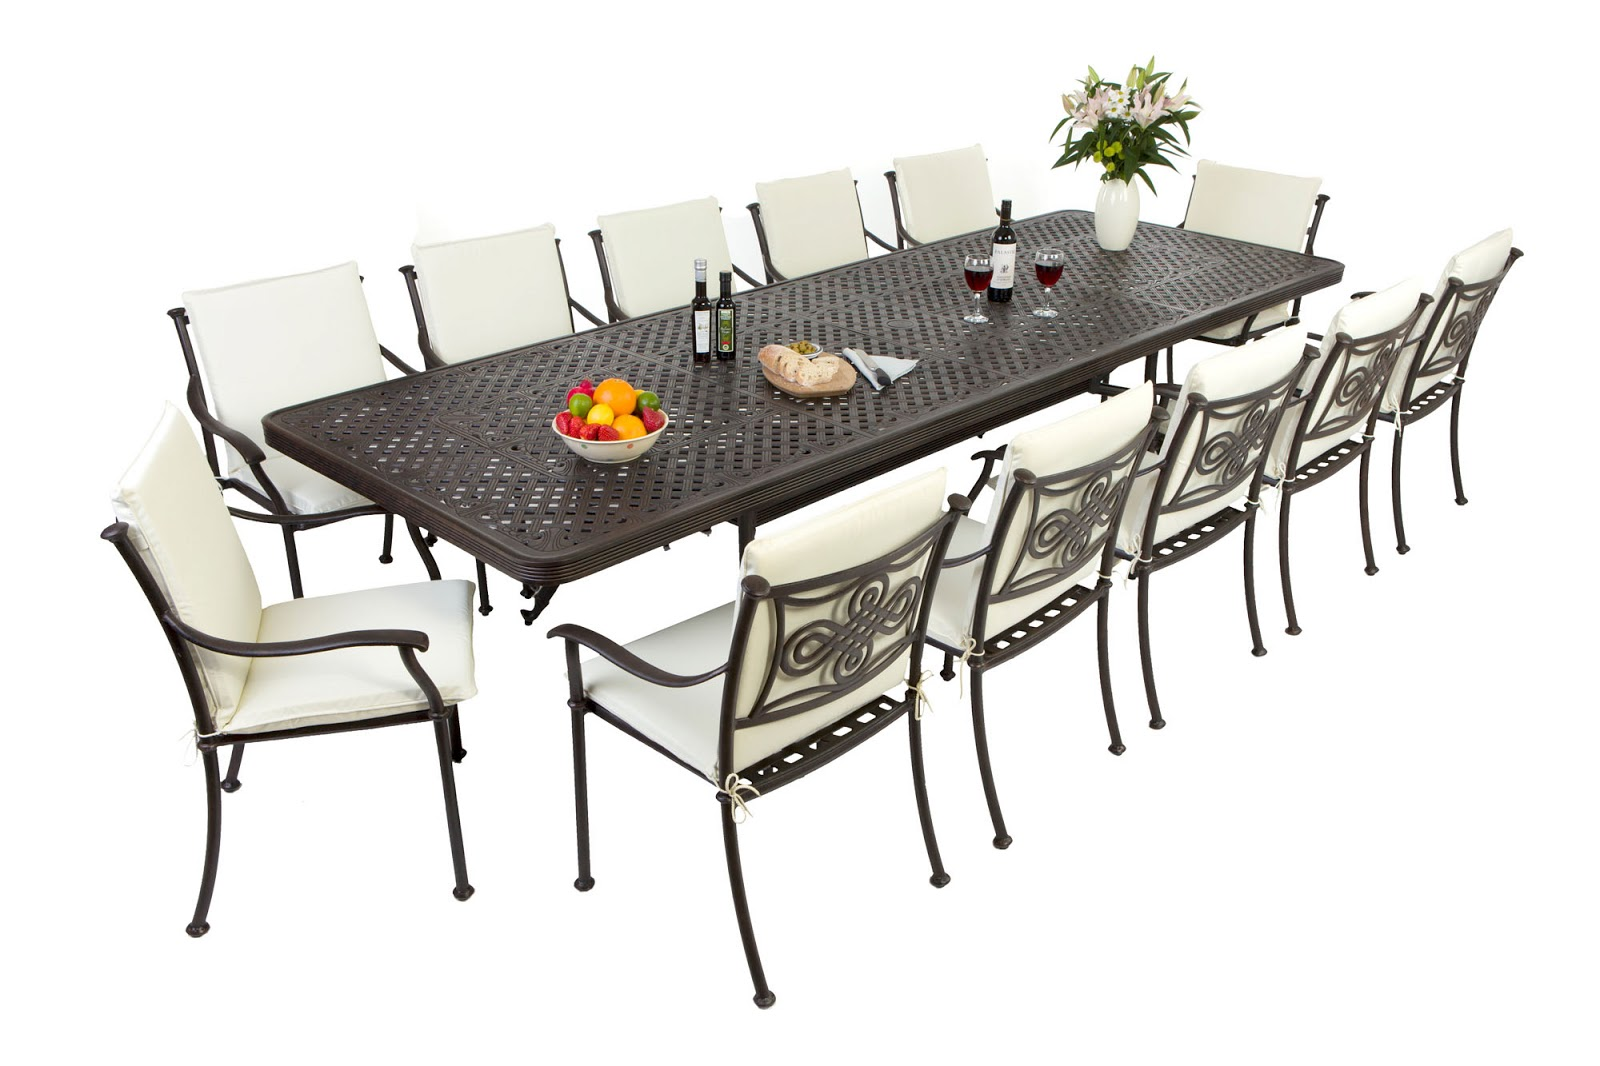 Outside edge garden furniture blog the biggest extending cast aluminium garden furniture set in Metal garden furniture sets